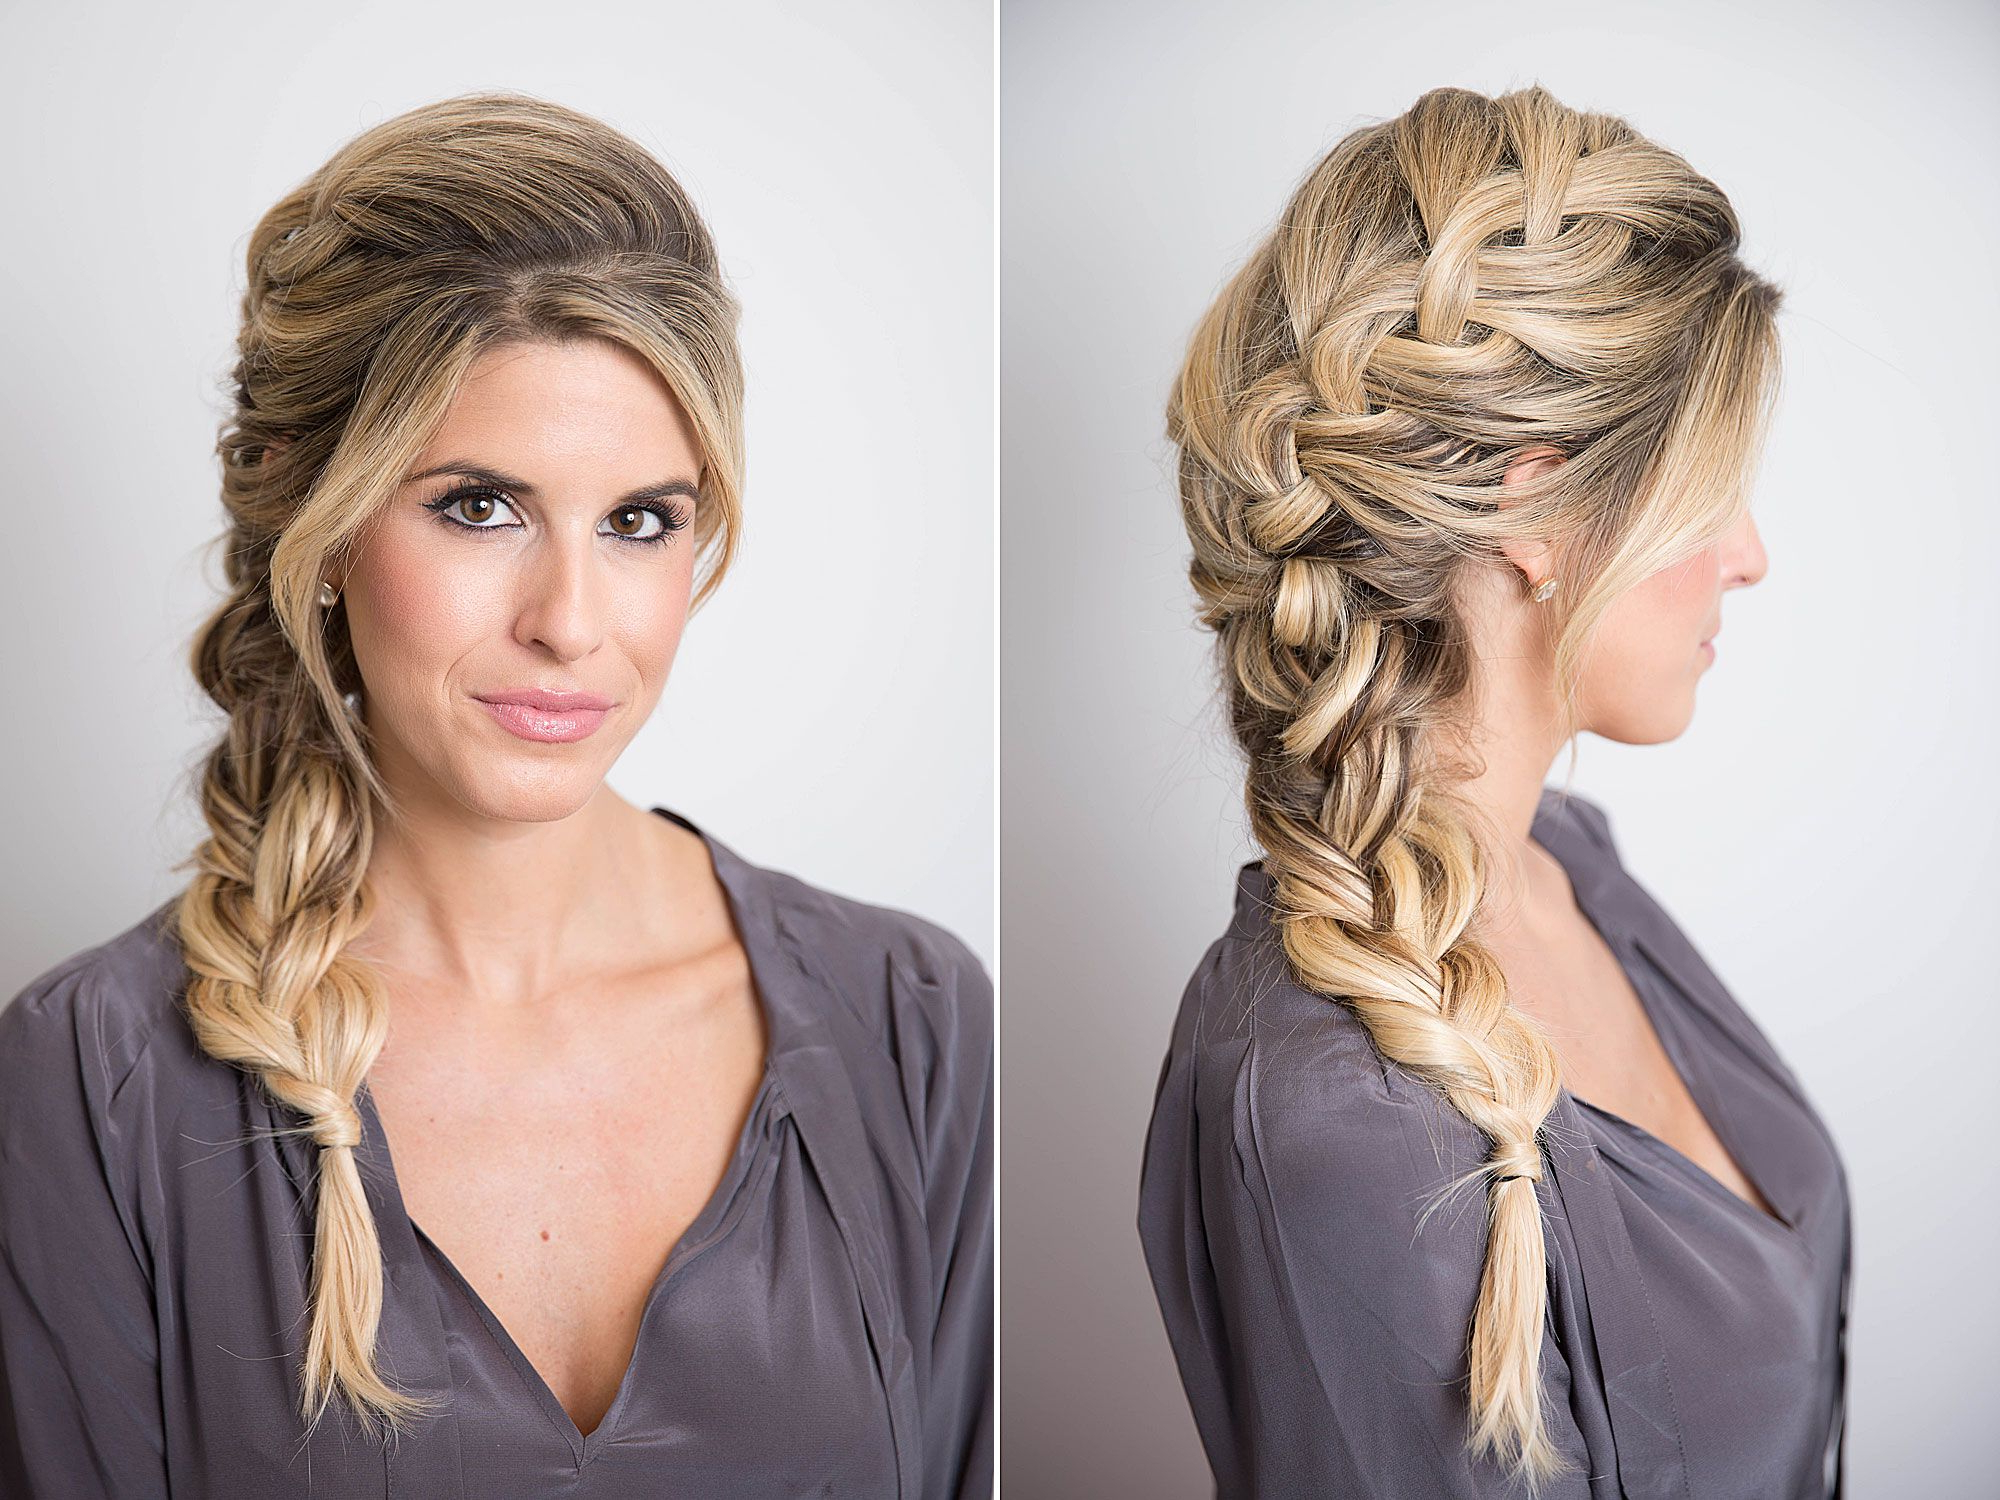 Recent Forward Braided Hairstyles With Hair Wrap Throughout 17 Braided Hairstyles With Gifs – How To Do Every Type Of Braid (View 15 of 20)